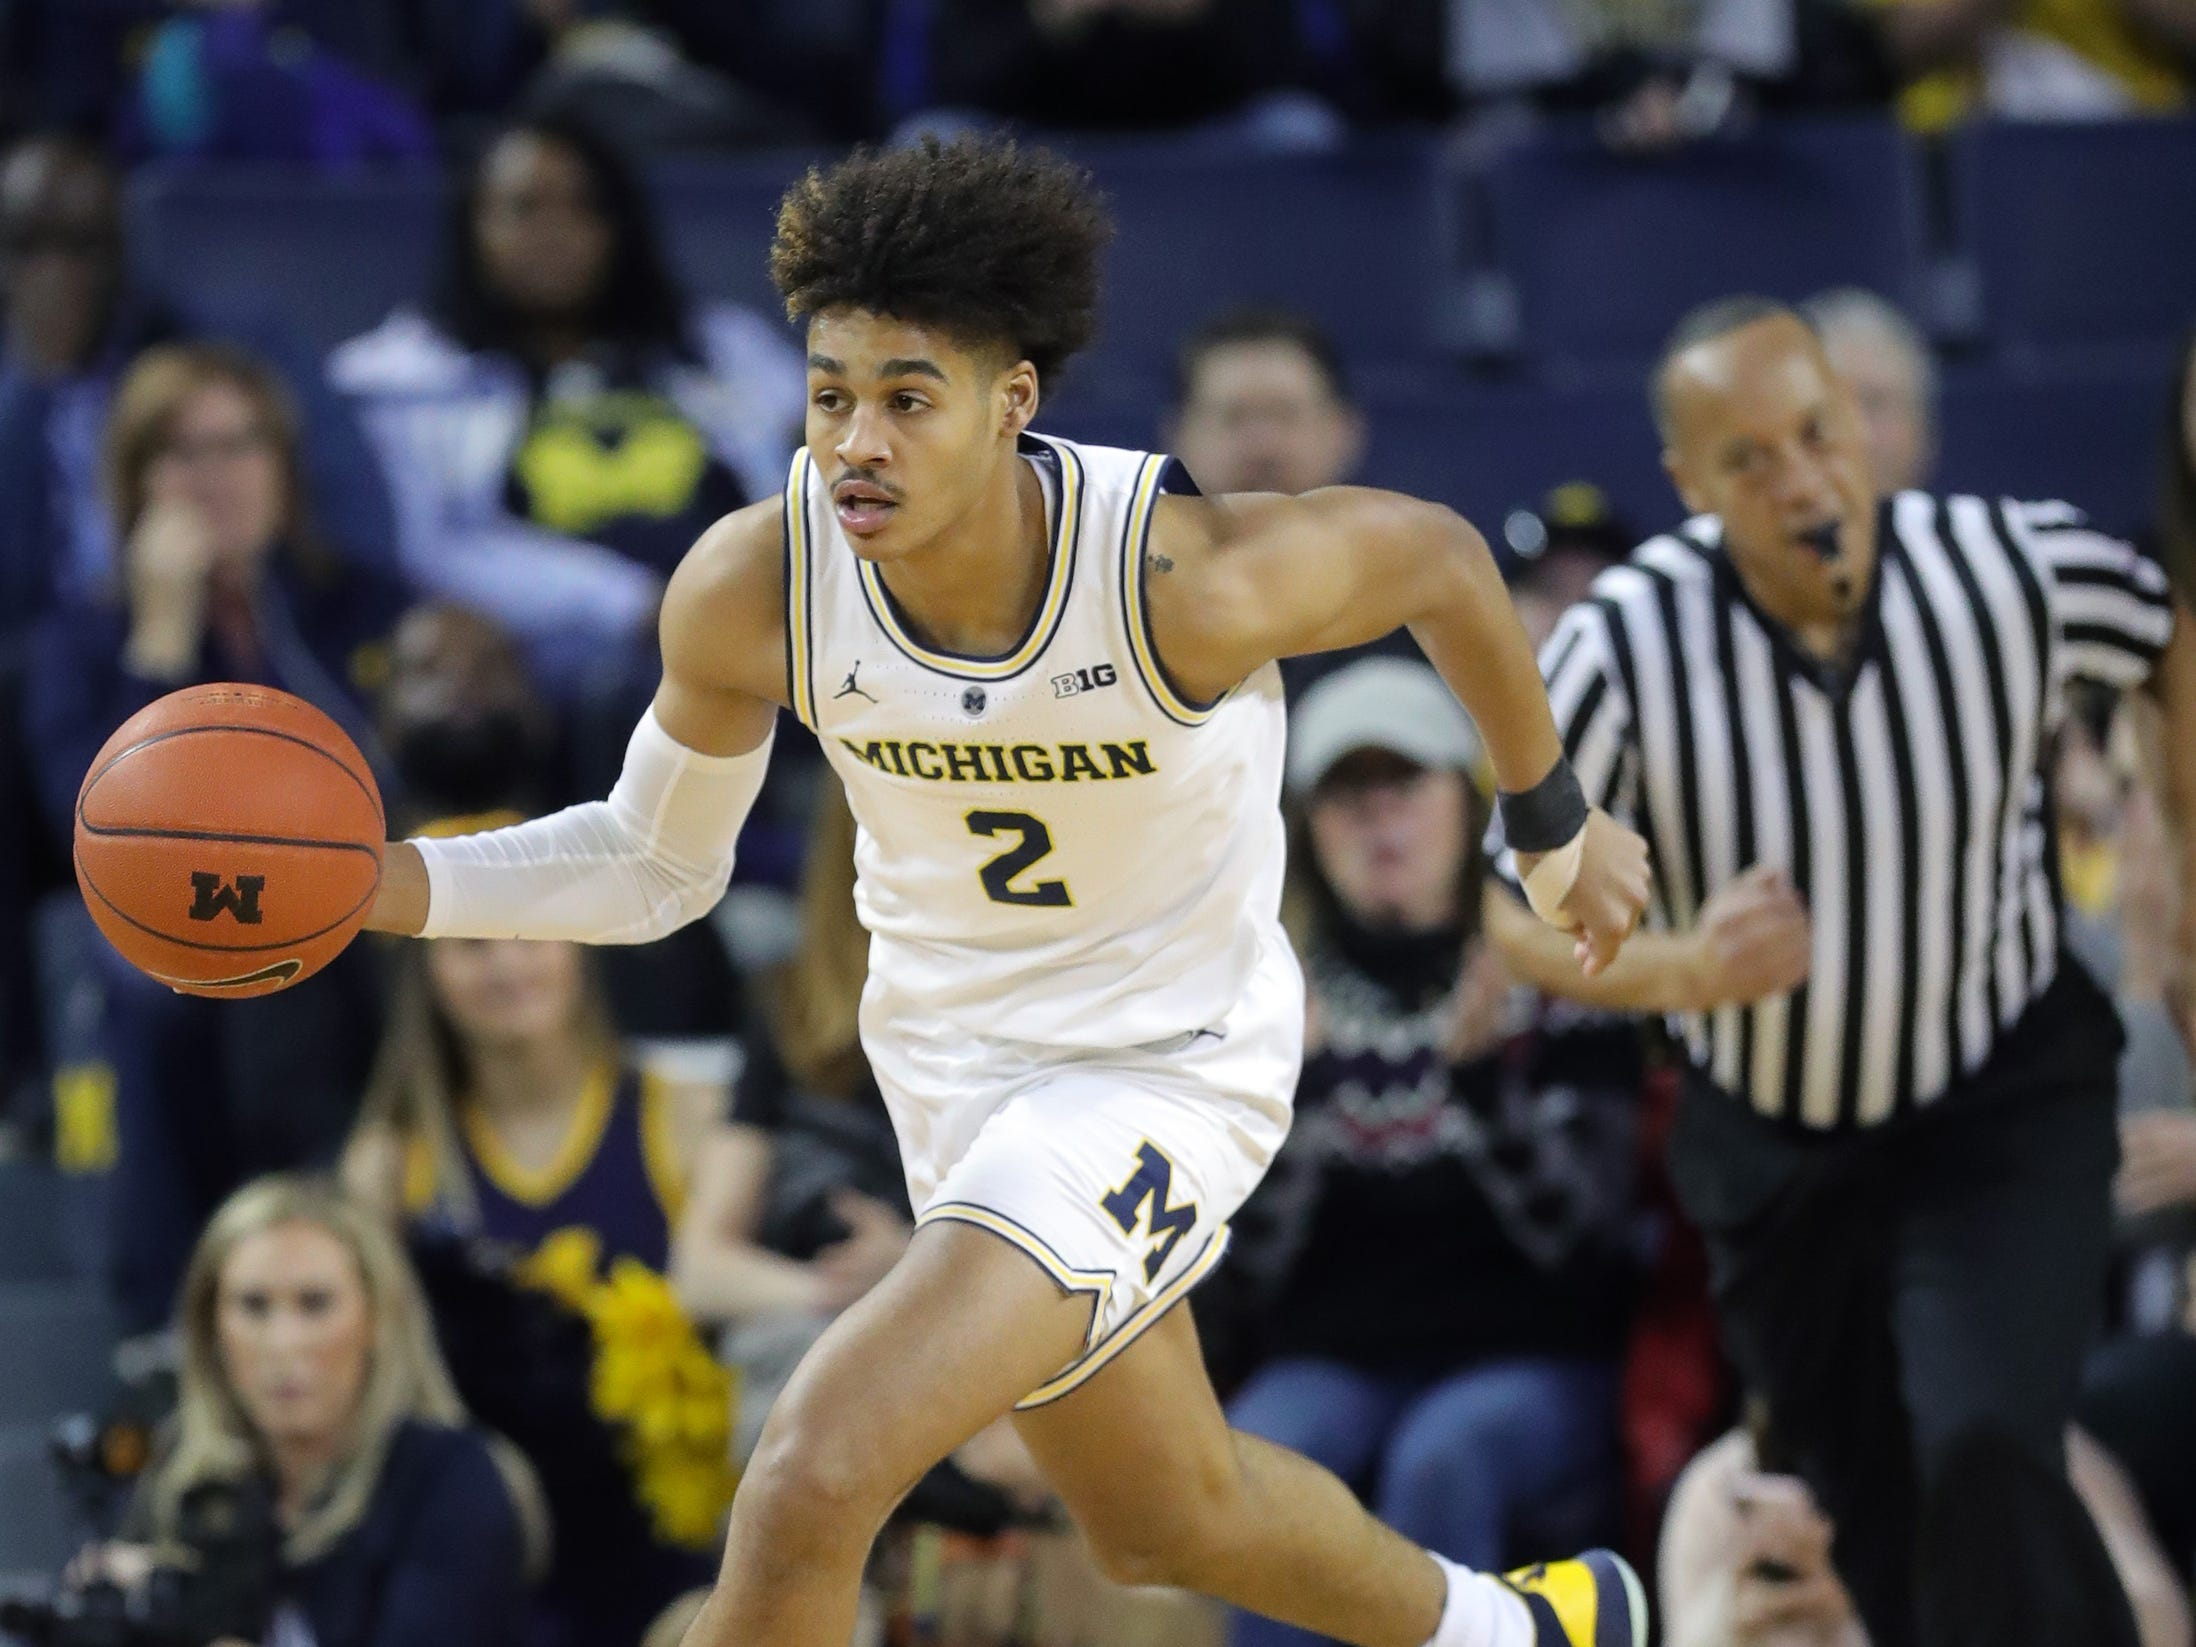 Michigan guard Jordan Poole brings the ball up court against Wisconsin, Saturday, Feb. 9, 2019 at the Crisler Center.